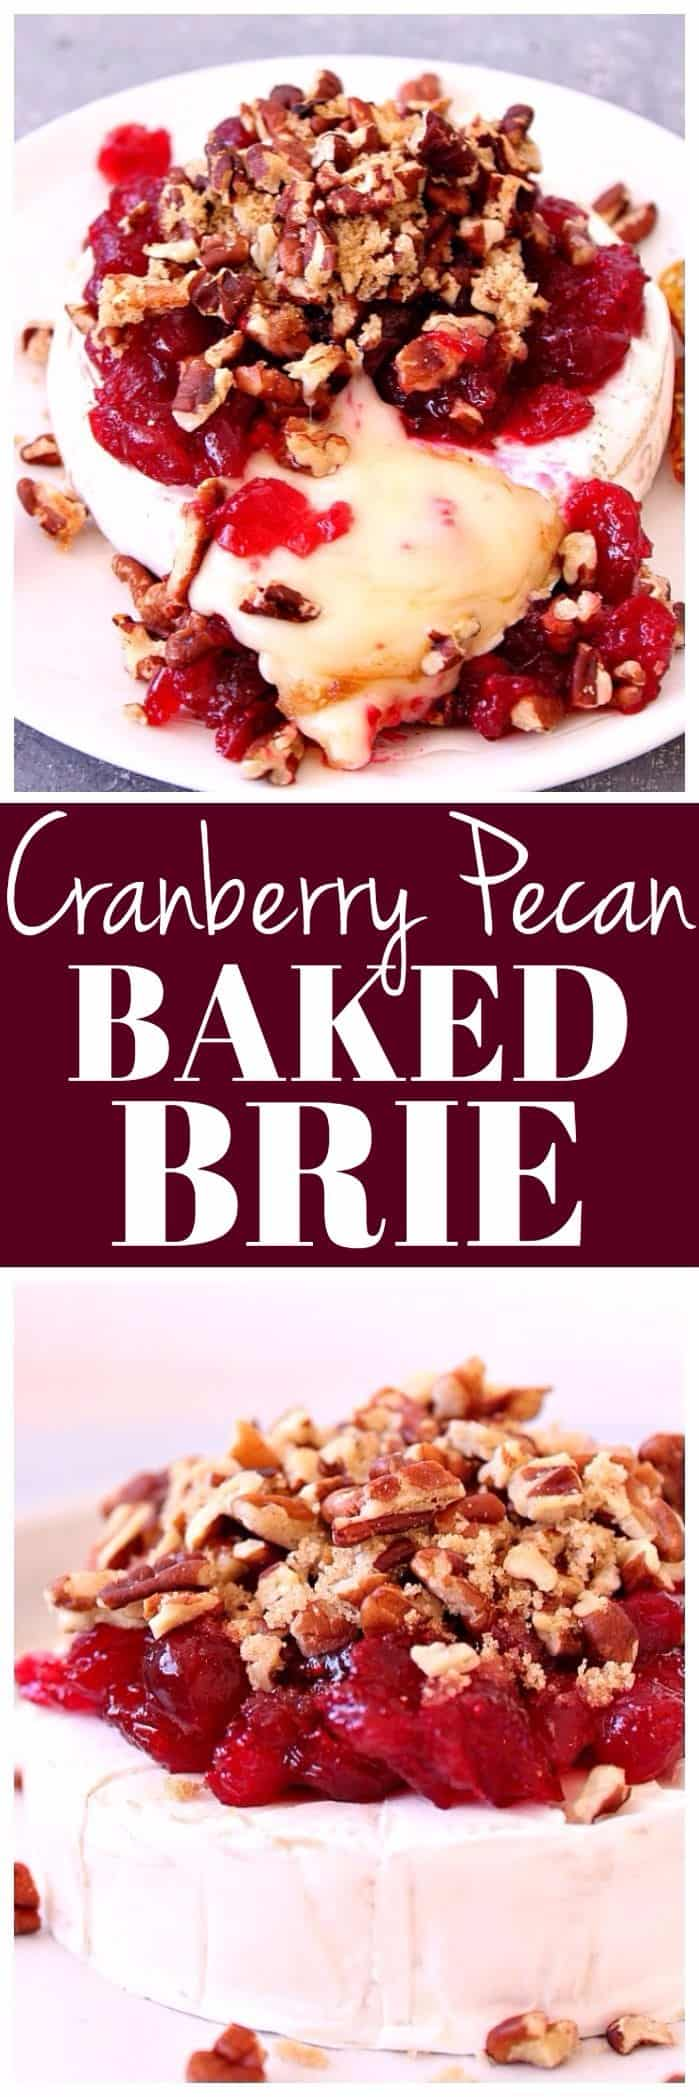 Cranberry Pecan Baked Brie Recipe long b1 Cranberry Pecan Baked Brie Recipe